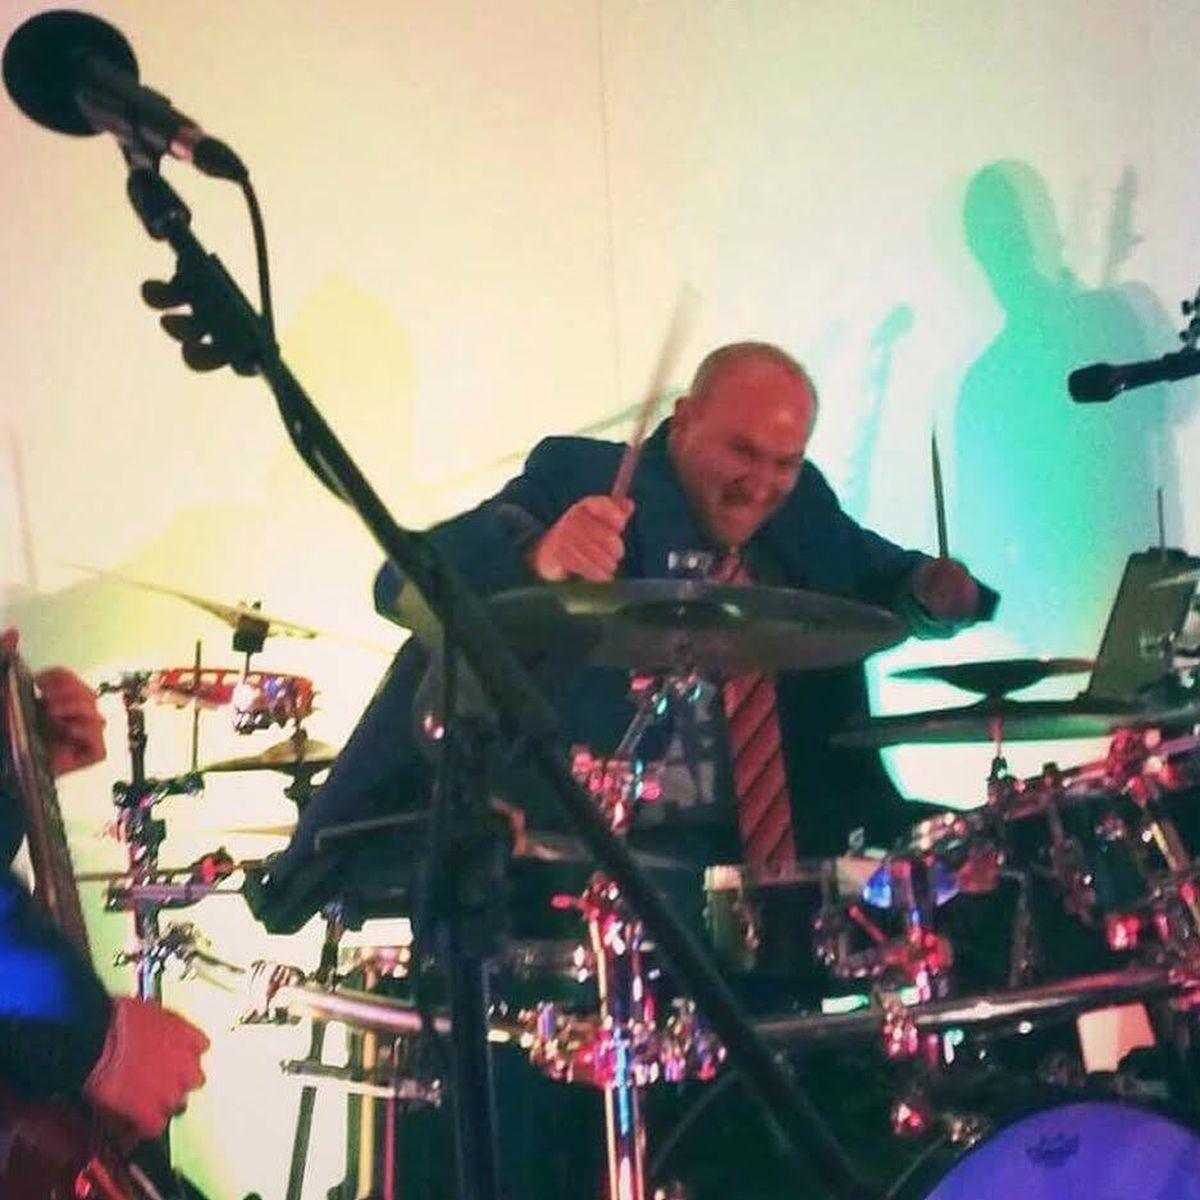 Tim rocking out on Sonic Booms drum kit with the band!